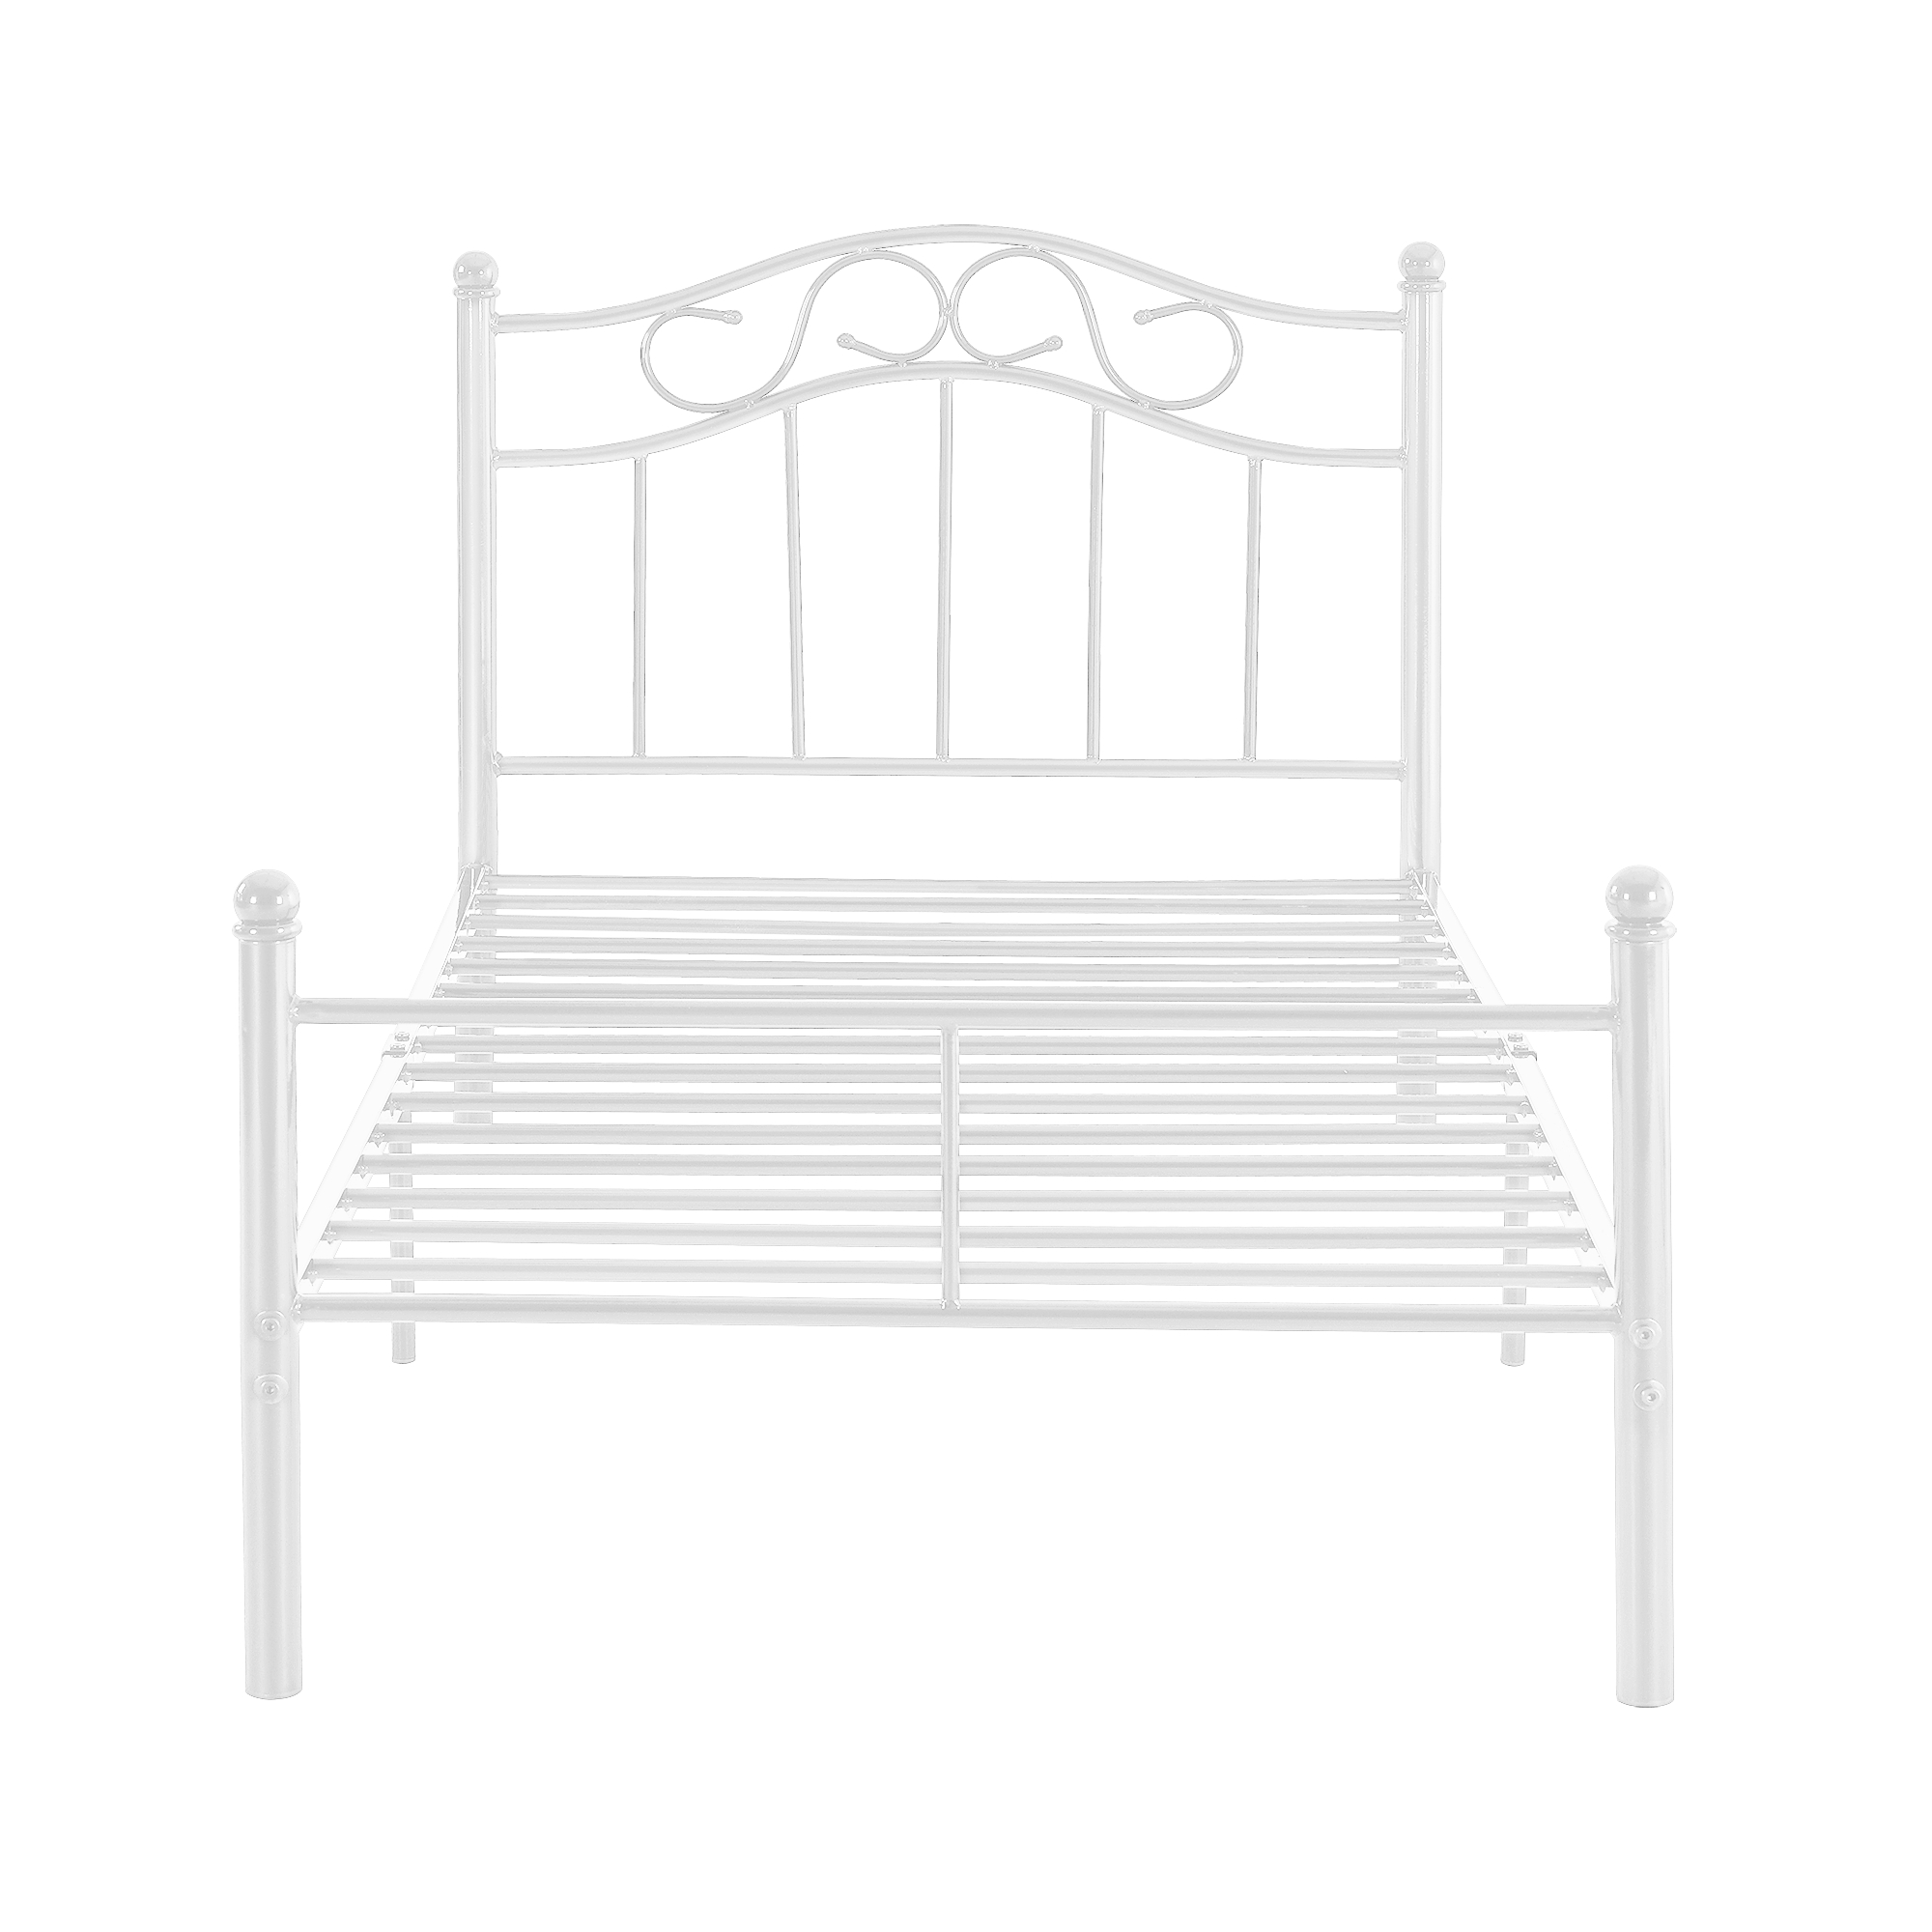 metallbett 120x200 wei mit matratze bettgestell bett jugendbett metall ebay. Black Bedroom Furniture Sets. Home Design Ideas